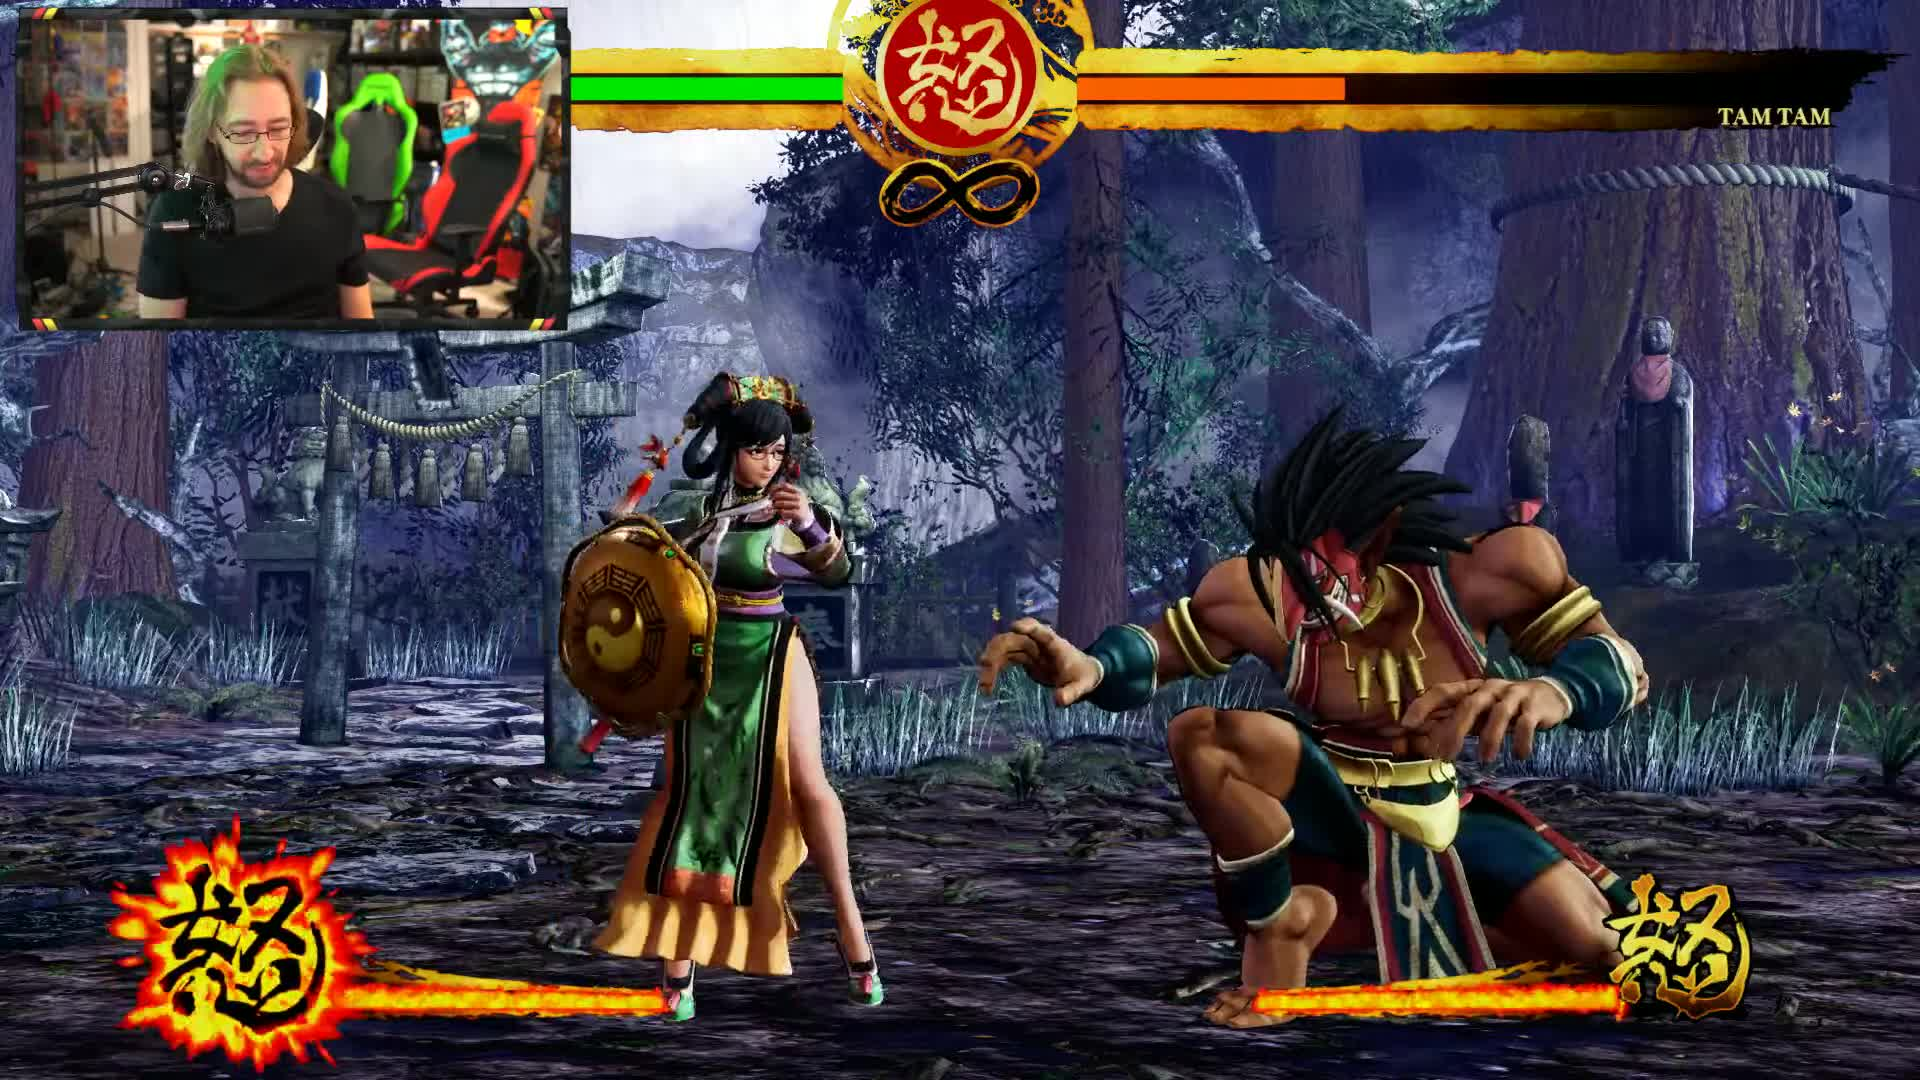 360, dood, fighter, fighting, games, instinct, killer, matches, maximilian, mortal, online, pc, playstation, ps3, ps4, ranked, street, RATE THE SUPER: Samurai Shodown 2019 GIFs